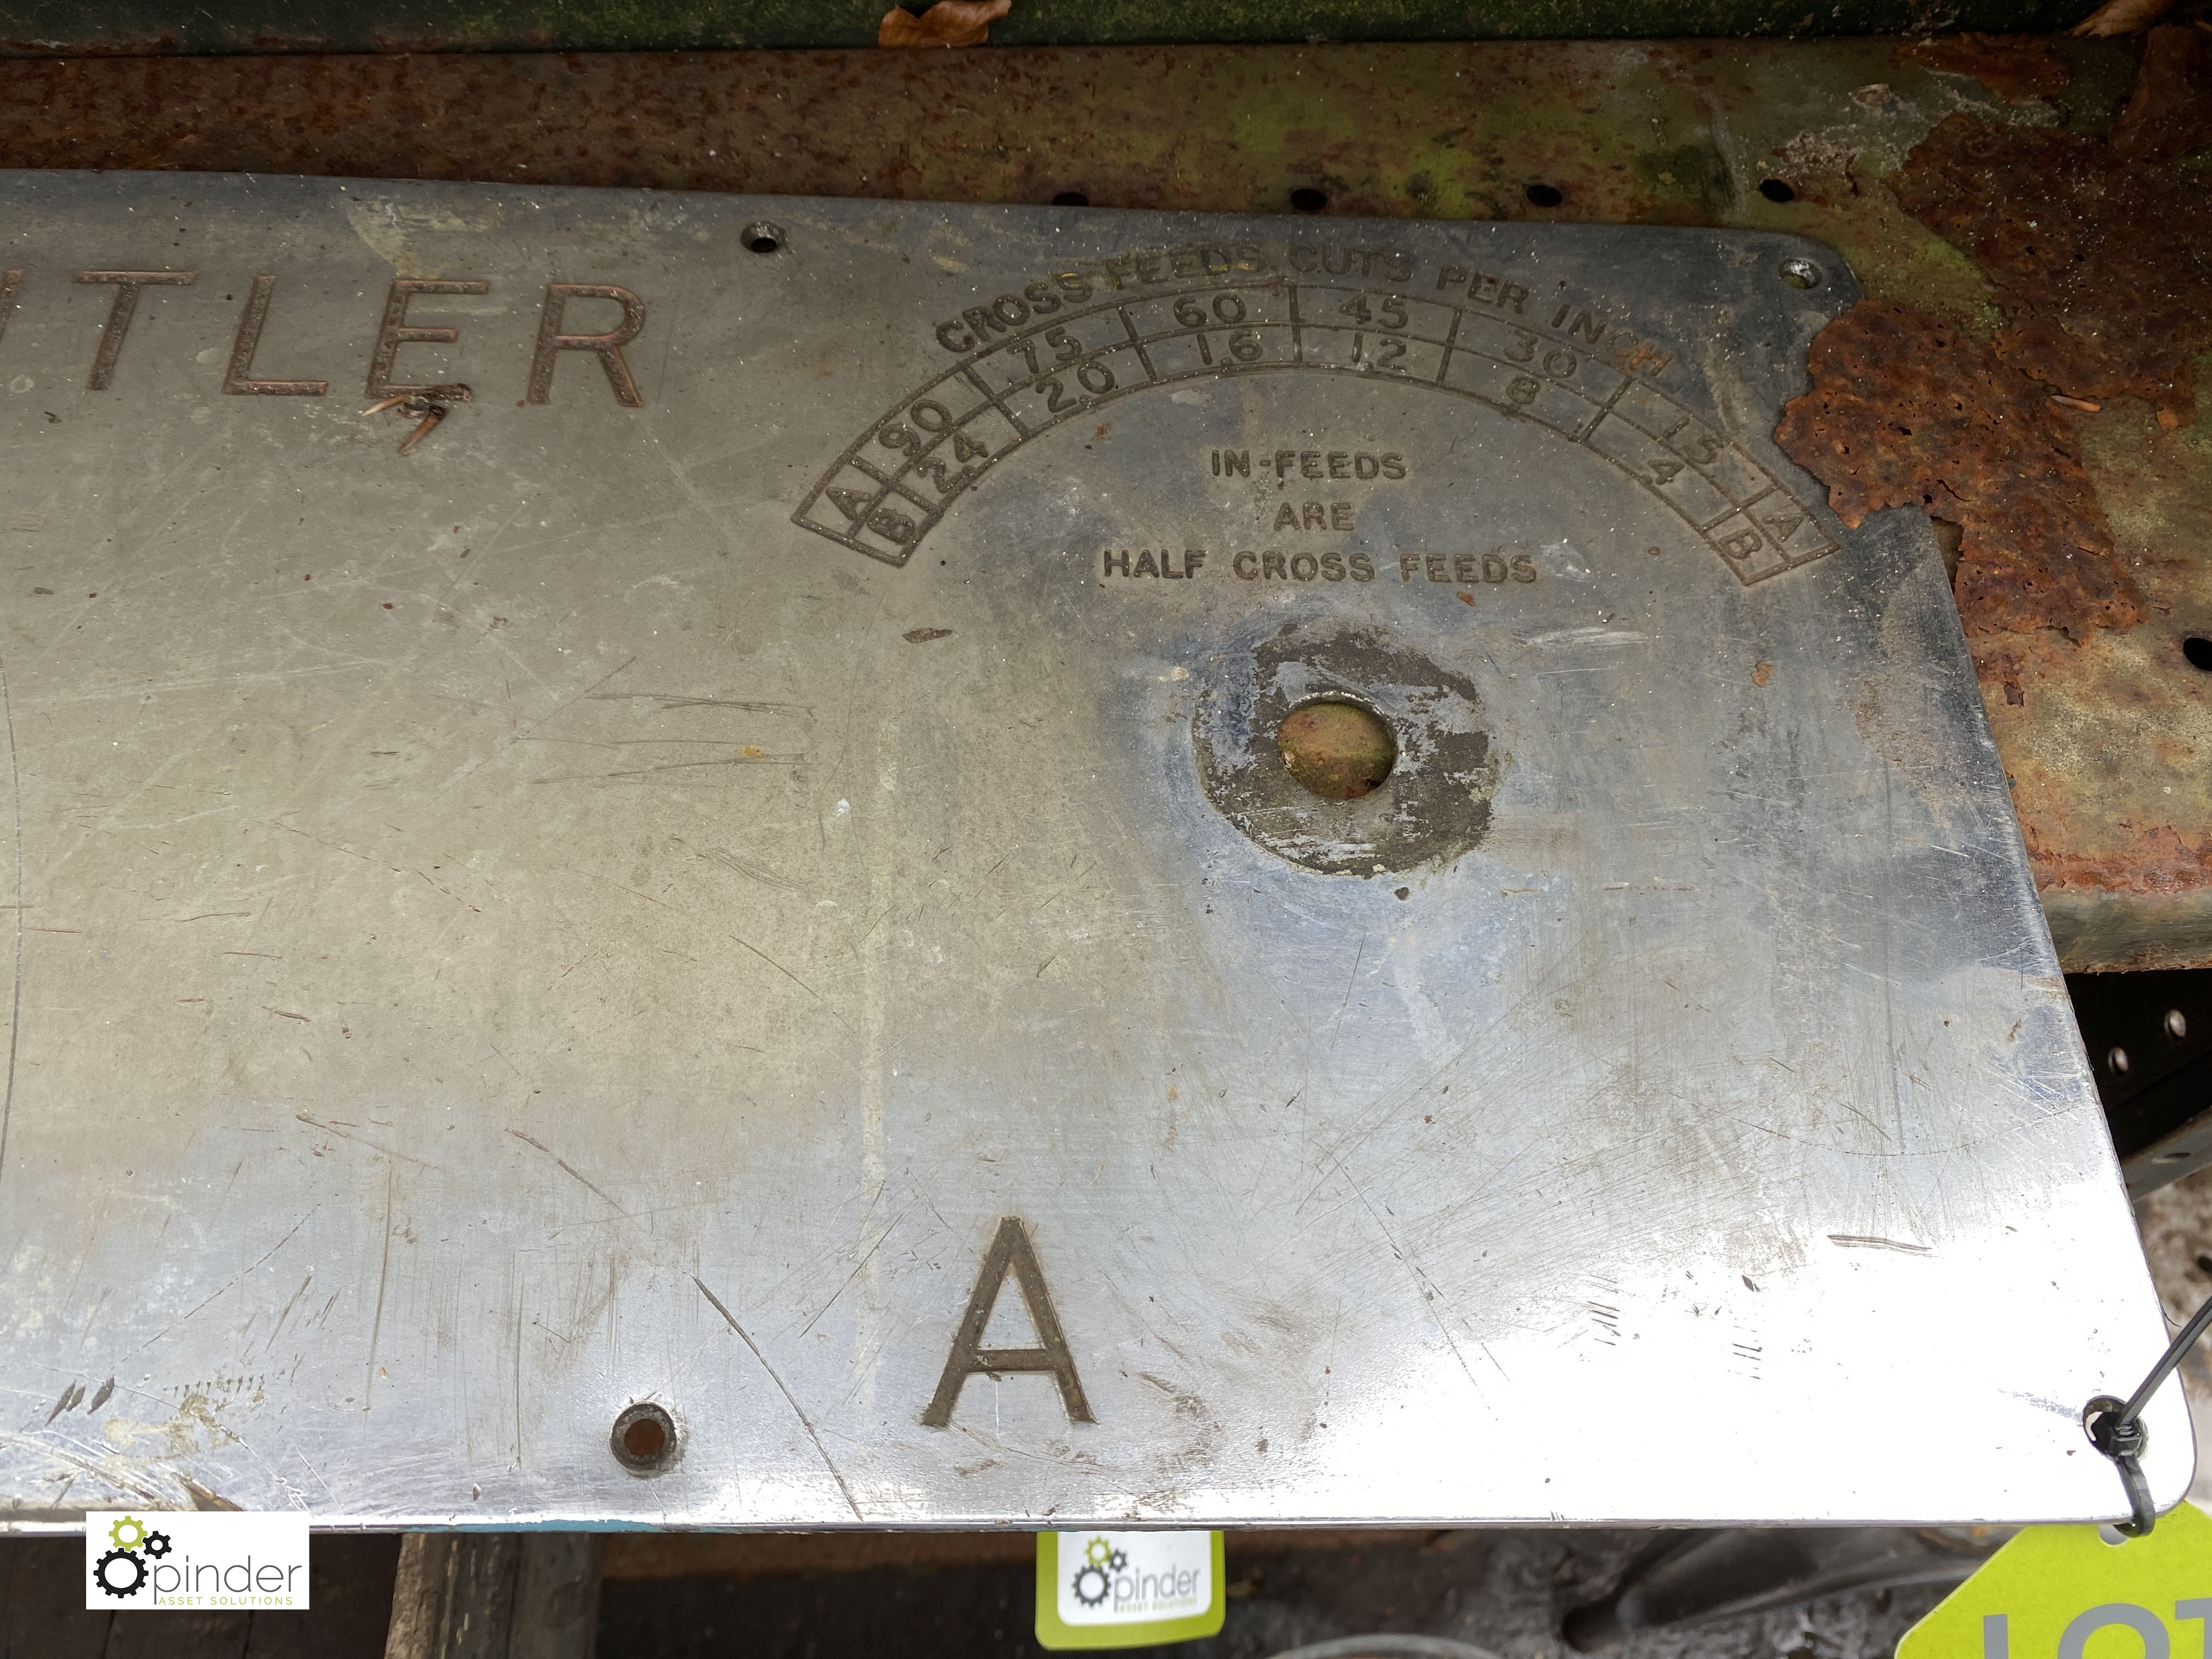 Butler Machine Plate (LOCATION: Sussex Street, Sheffield) - Image 2 of 3